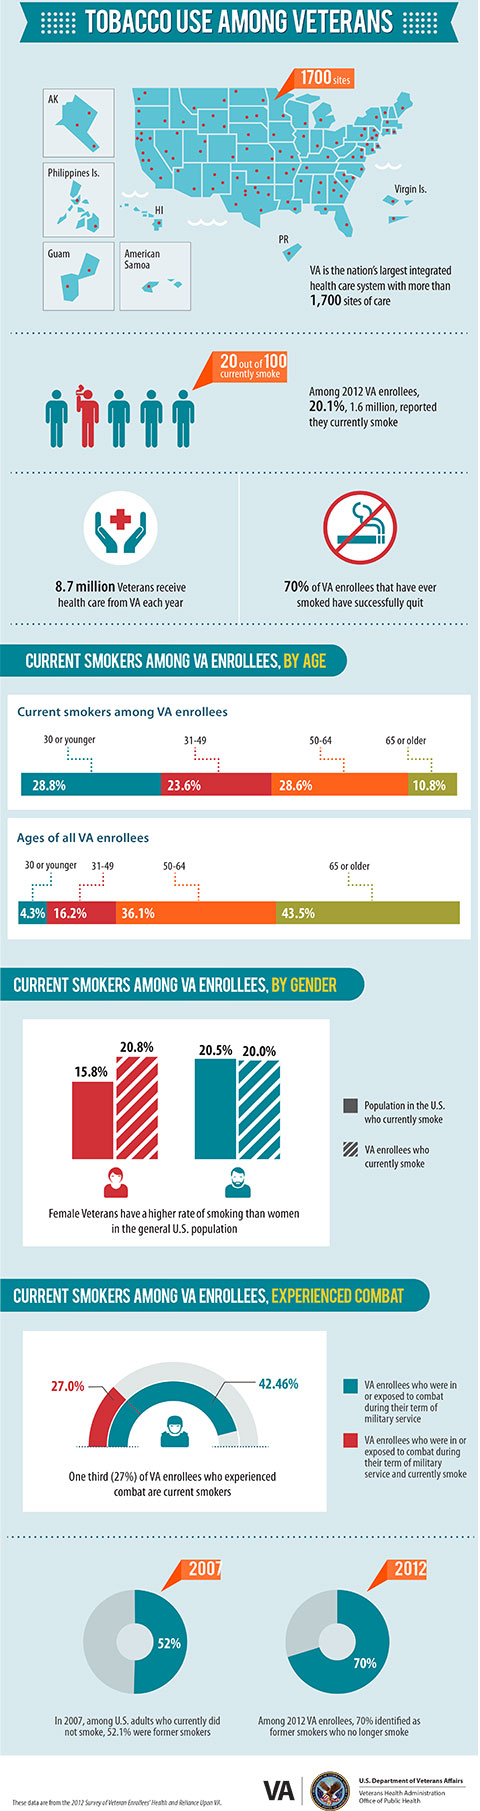 tobacco use among veterans infographic